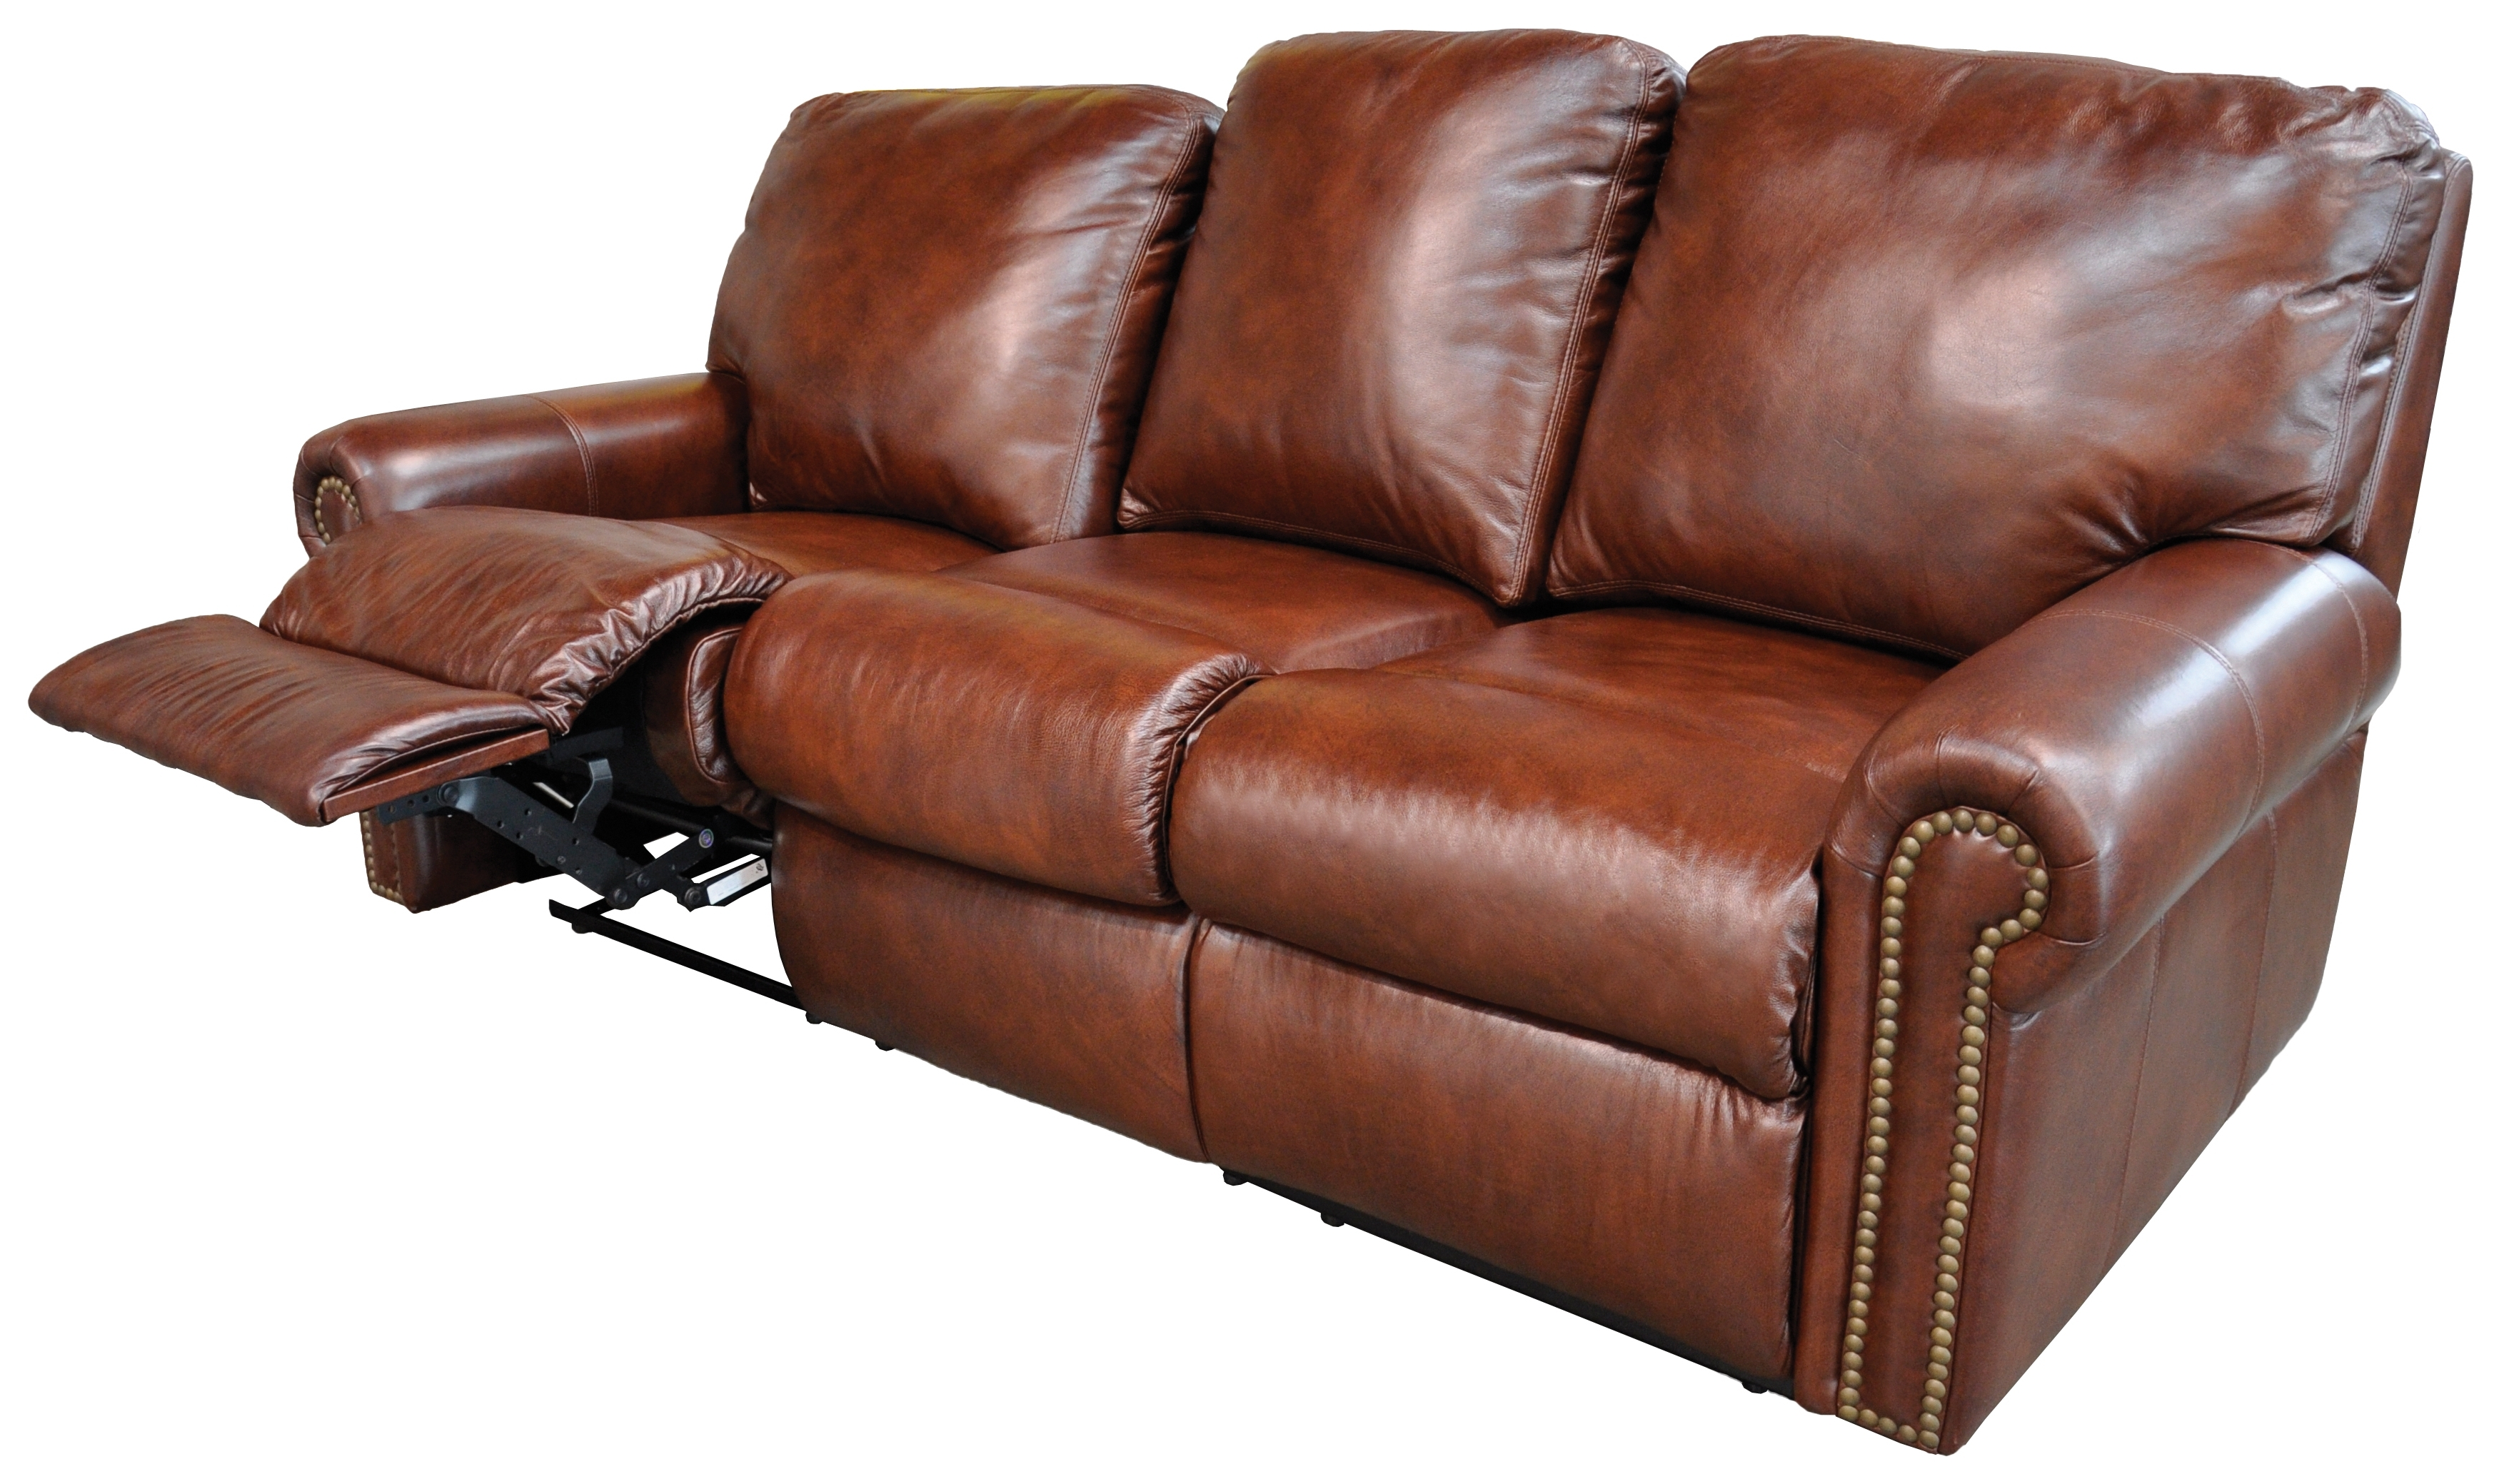 Sofa Recliner Leather – Home And Textiles With Trendy Modern Reclining Leather Sofas (View 14 of 15)